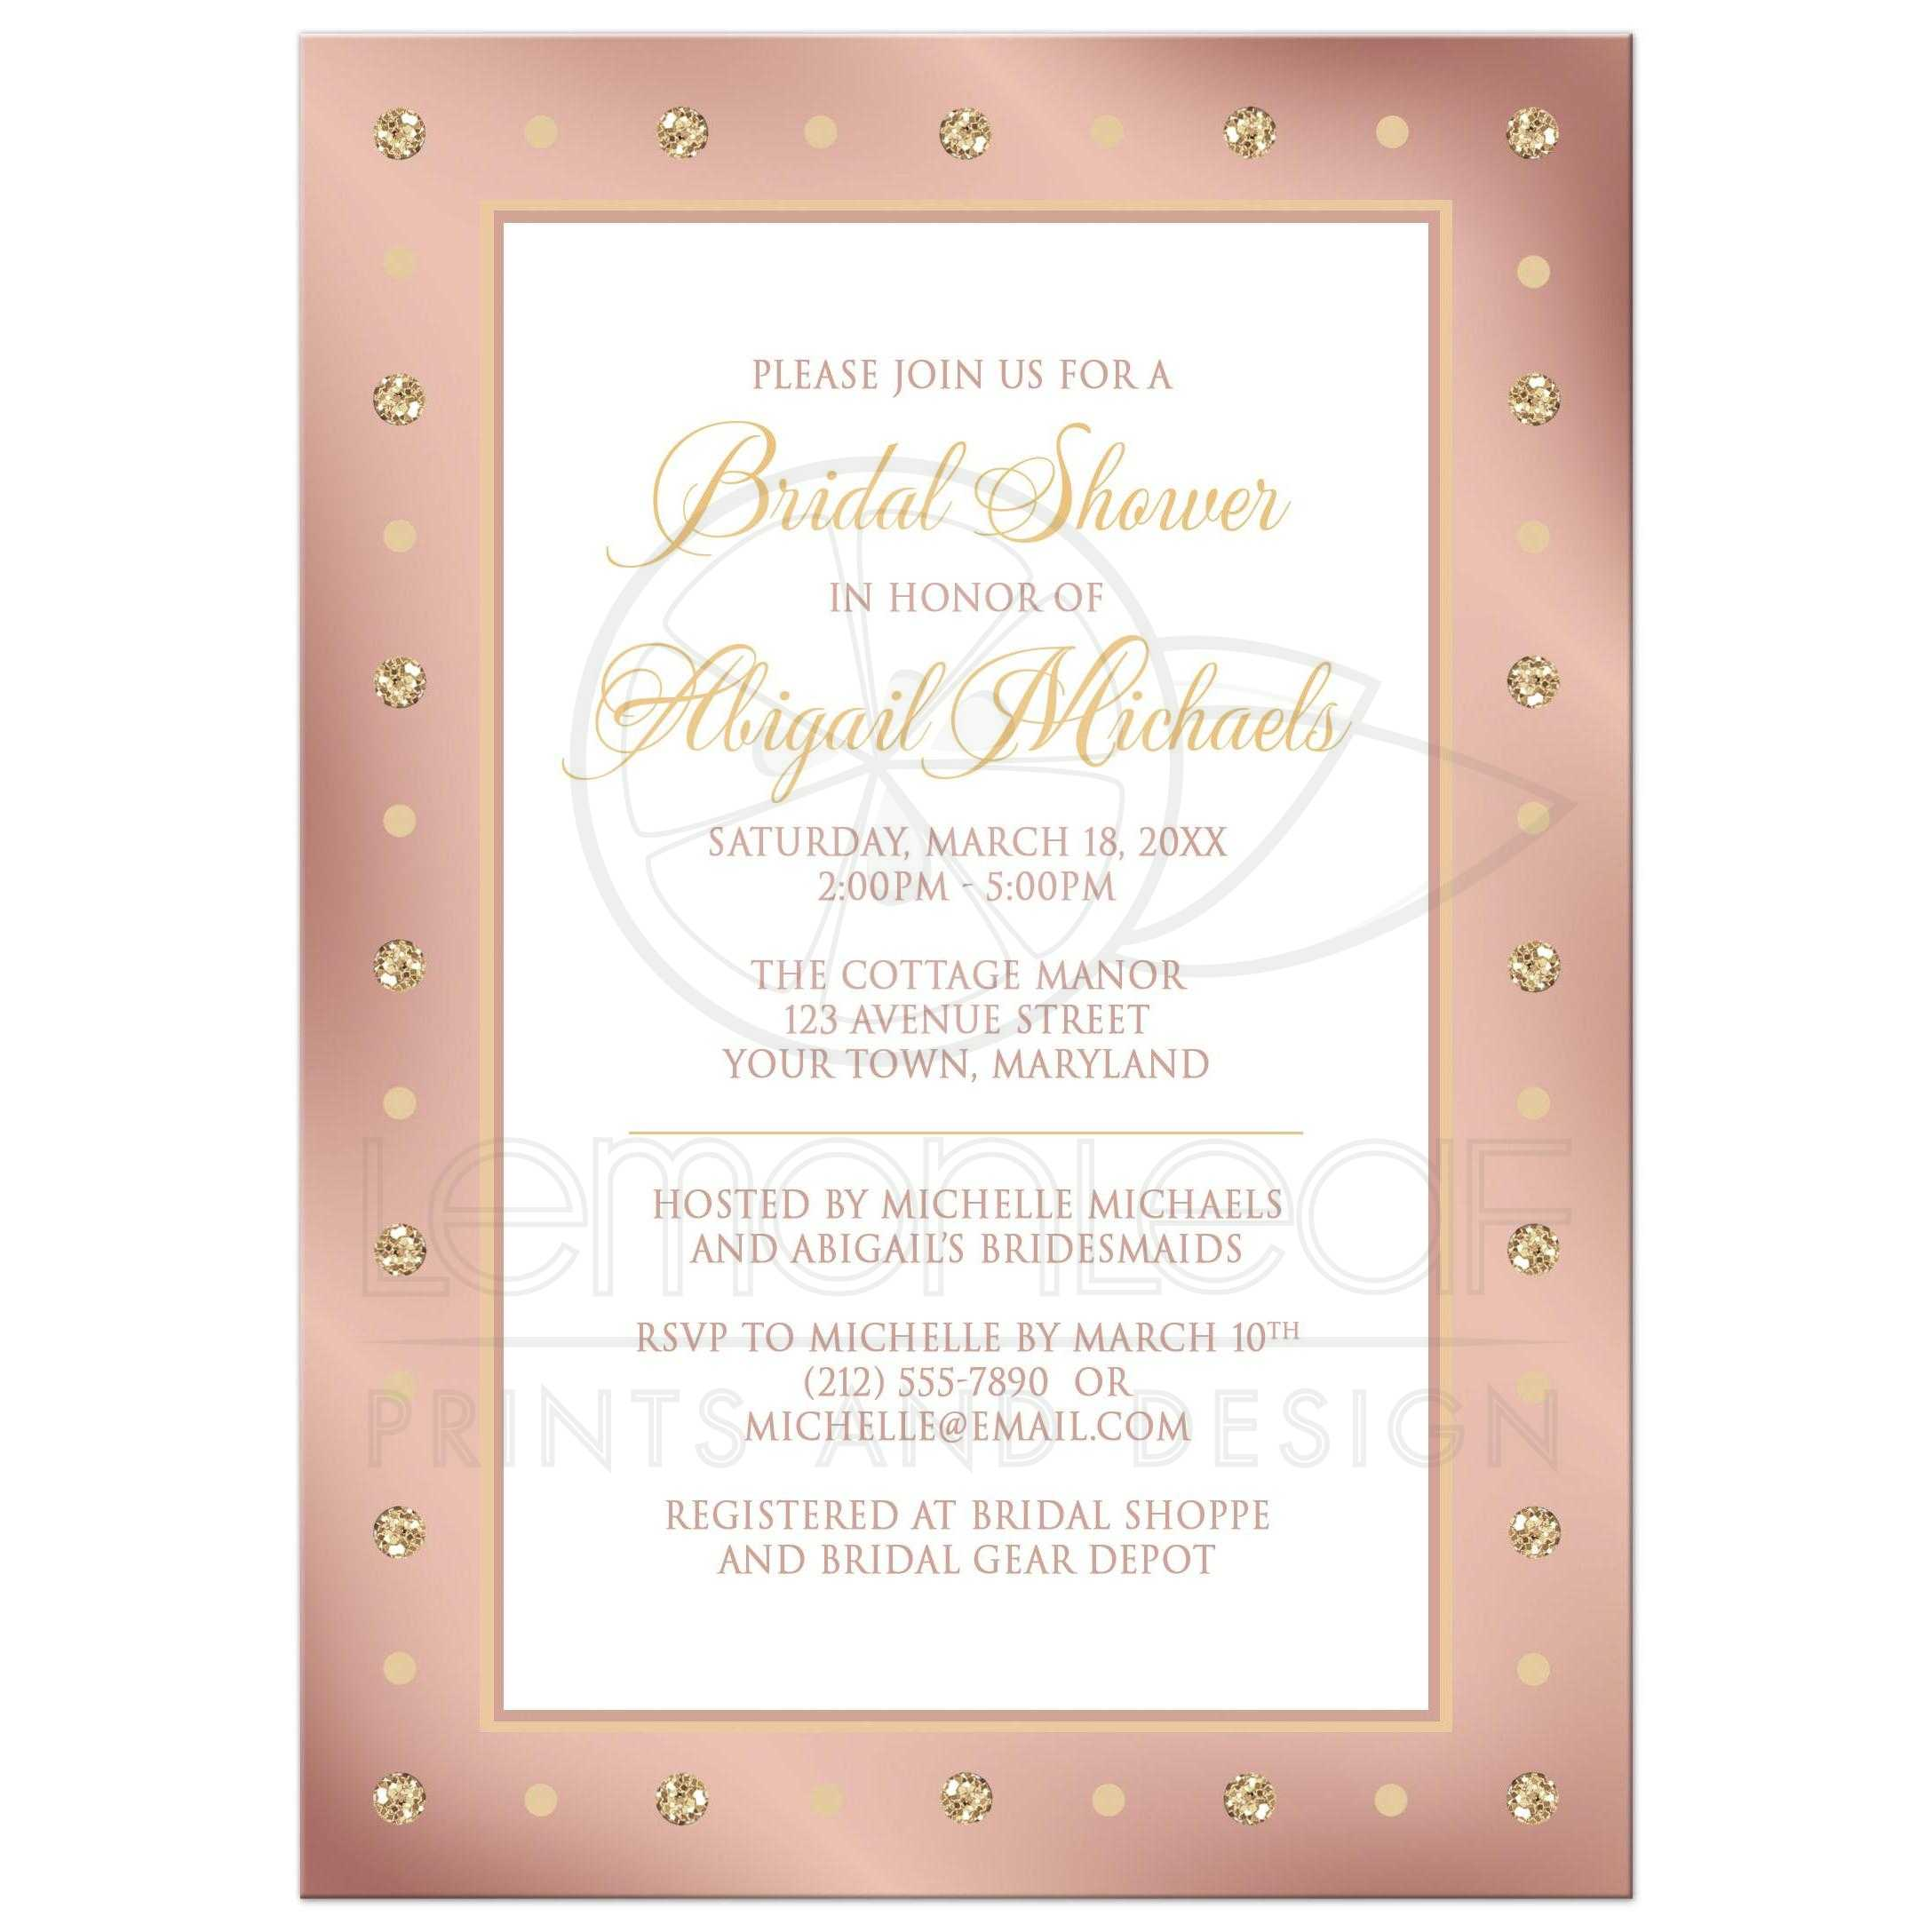 Lace Baptism Invitations is nice invitation template